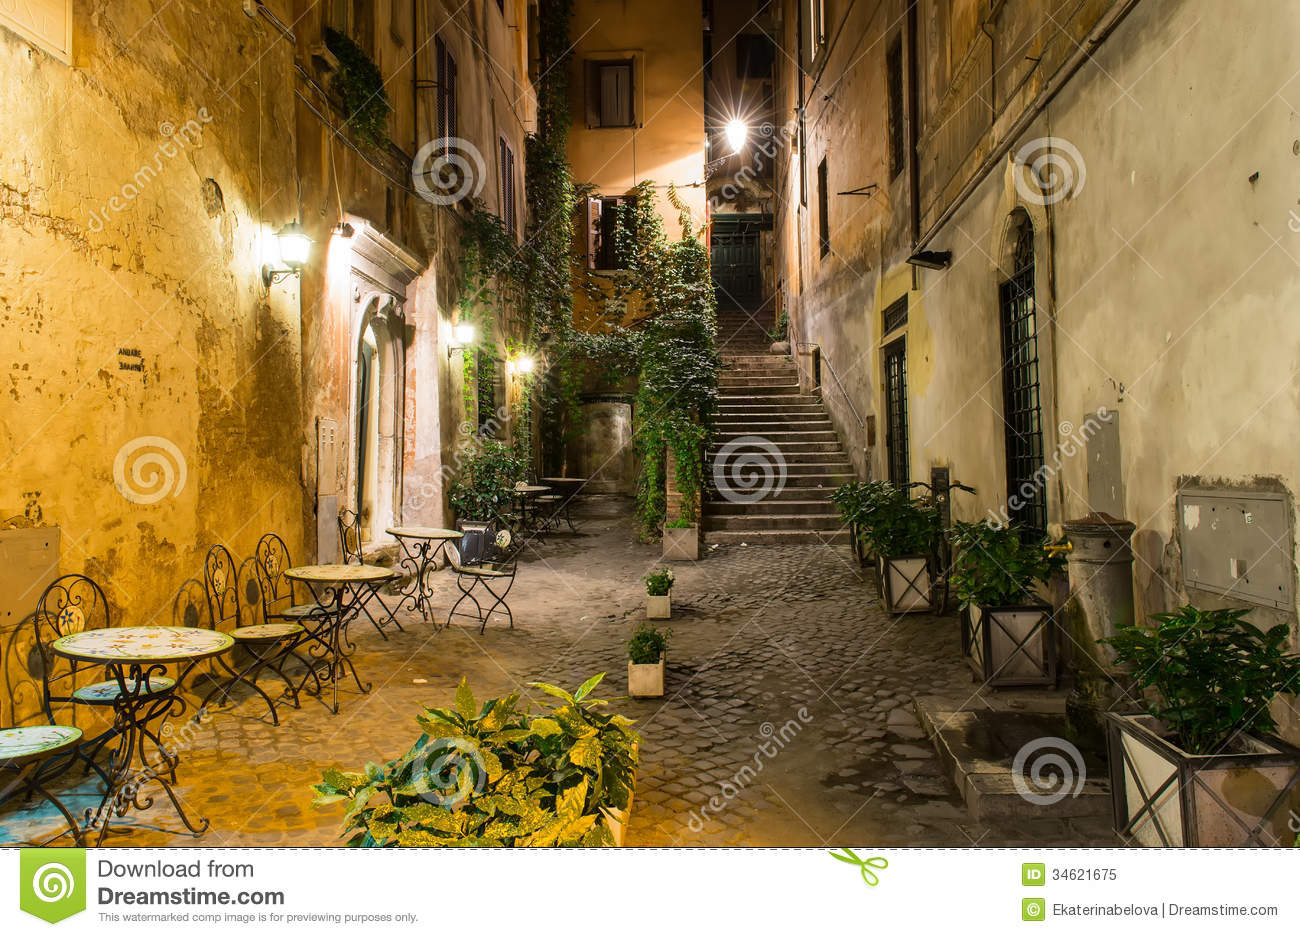 restaurant chairs for less office chair headrest attachment old courtyard in rome stock image. image of house, - 34621675